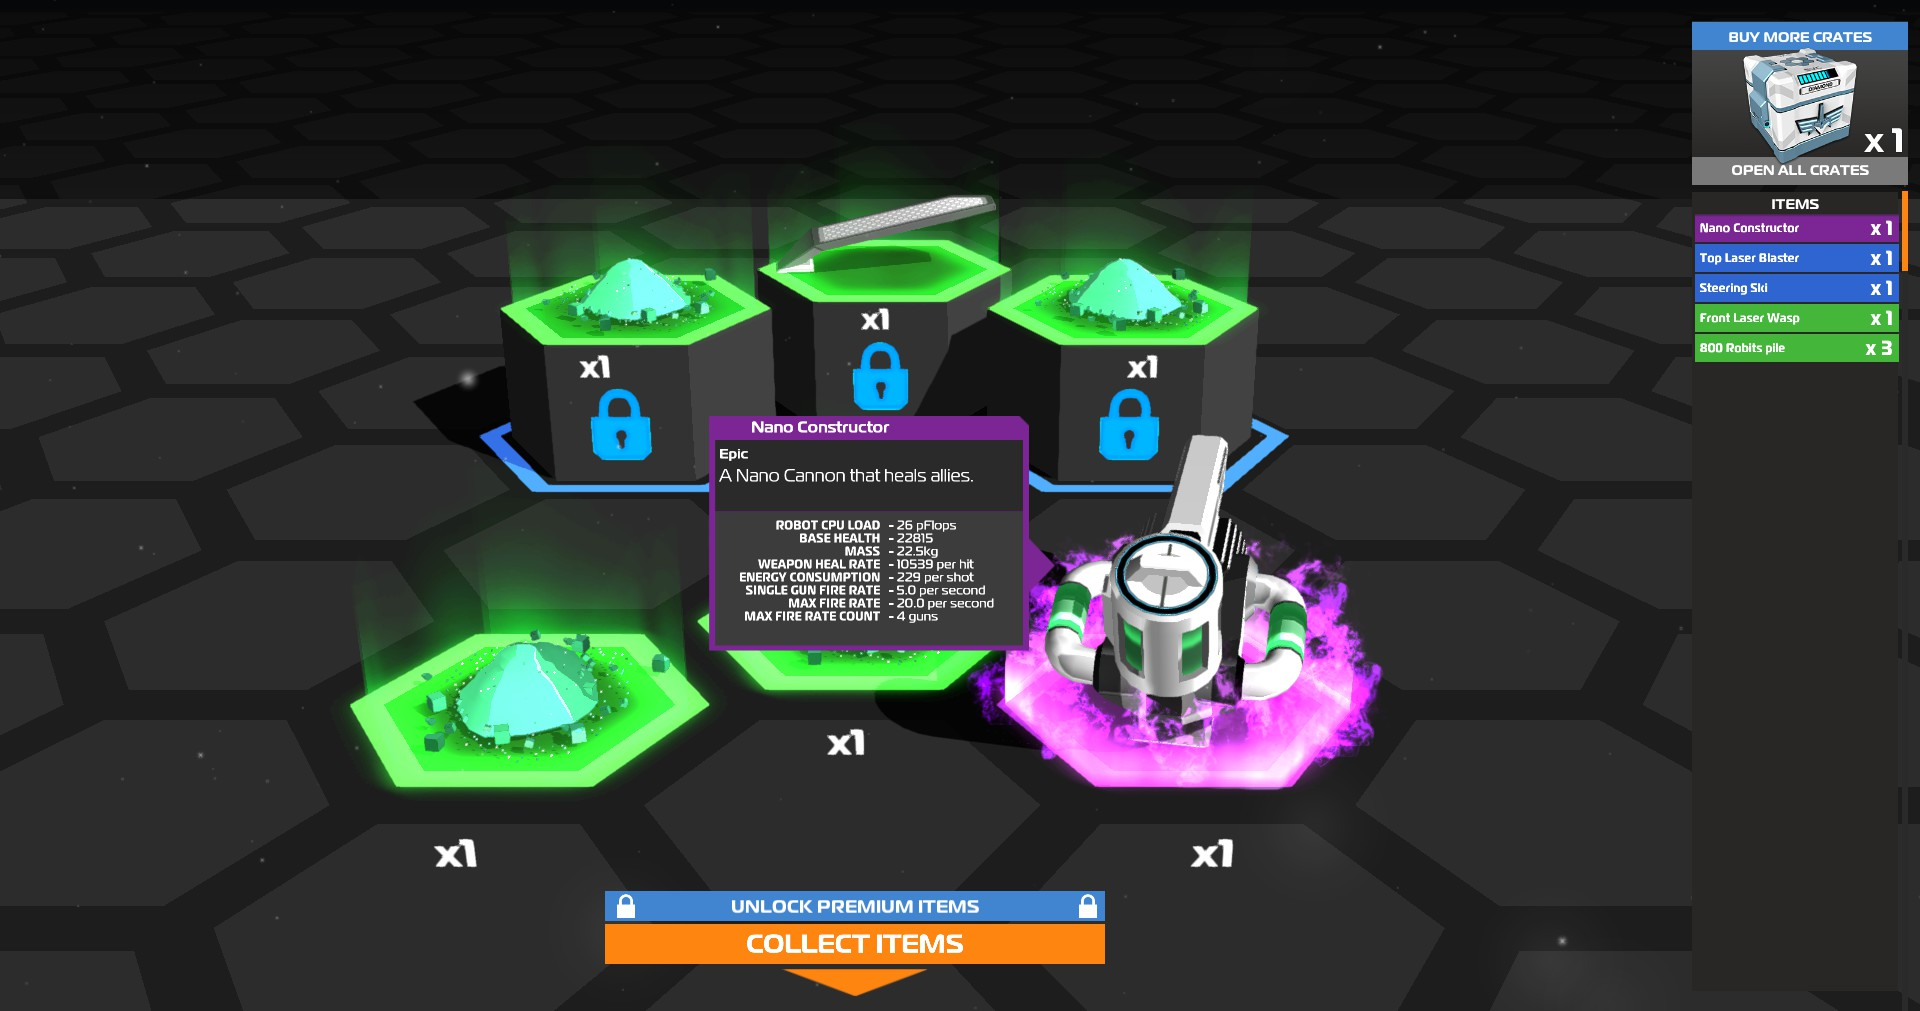 Some initial thoughts on Robocraft, the free to play game